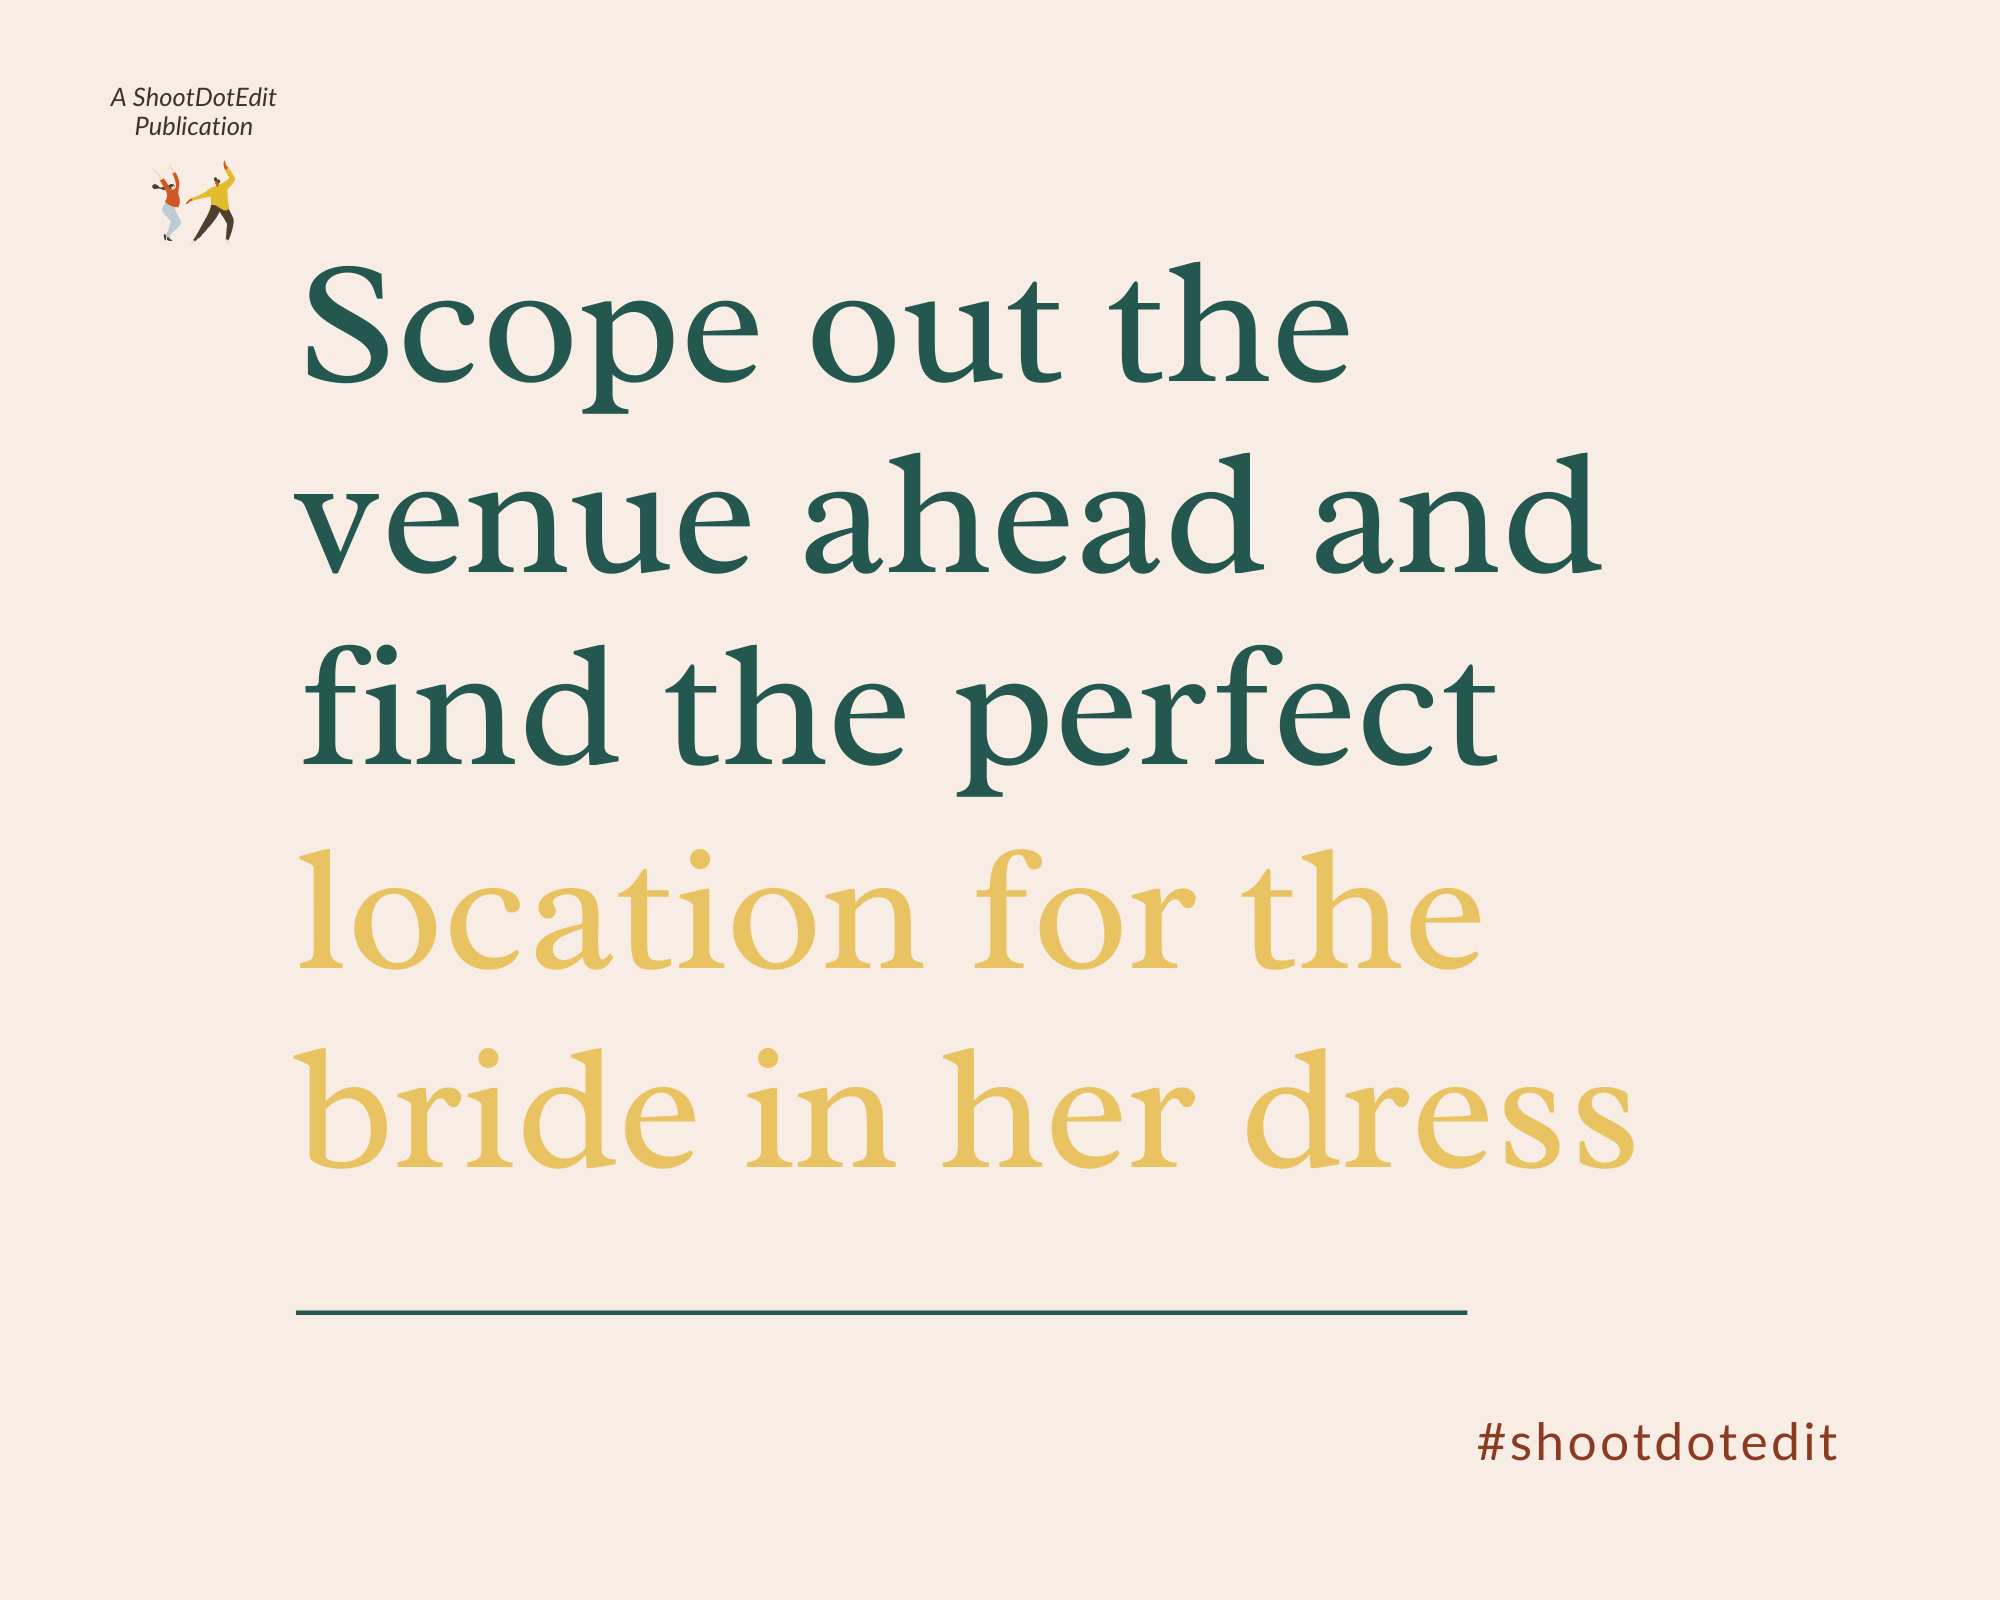 Infographic stating scope out the venue ahead and find the perfect location for the bride in her dress